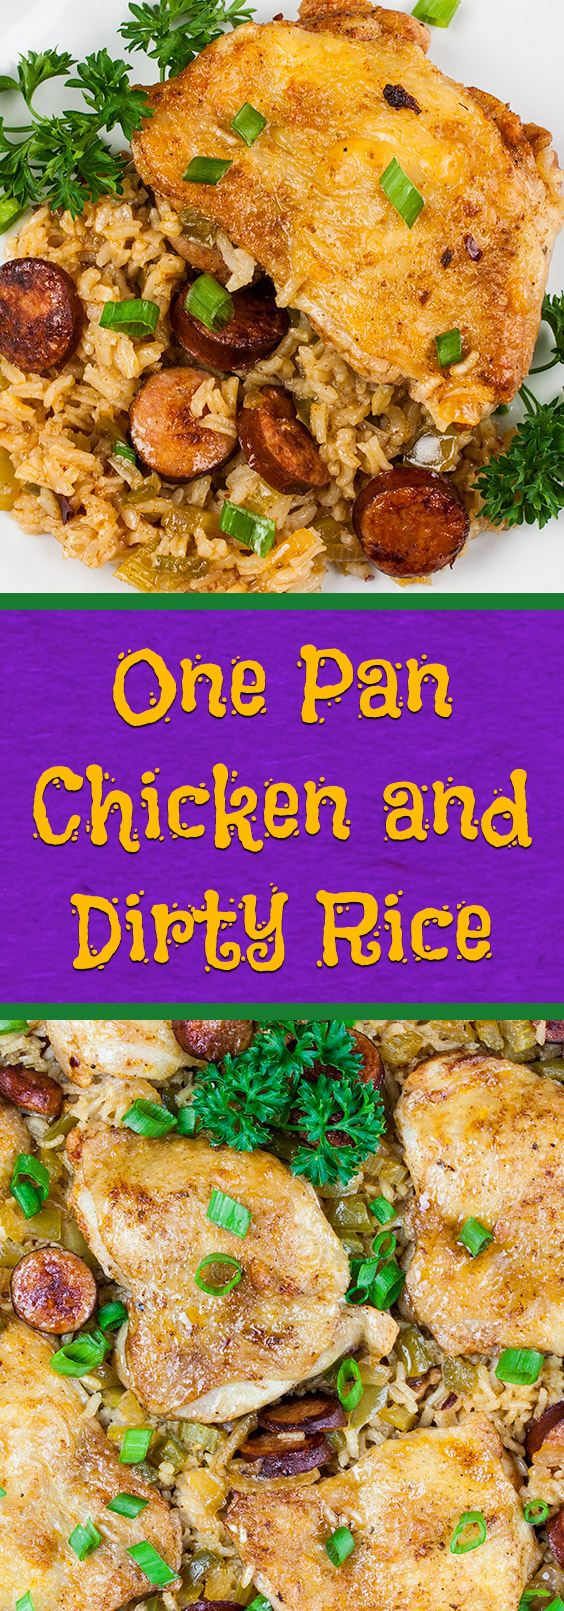 One Pan Chicken and Dirty Rice - Add a little Cajun spice to your dinner tonight!Spicy, creamy, delicious and ready in 30 minutes! #dinner #easy #recipe